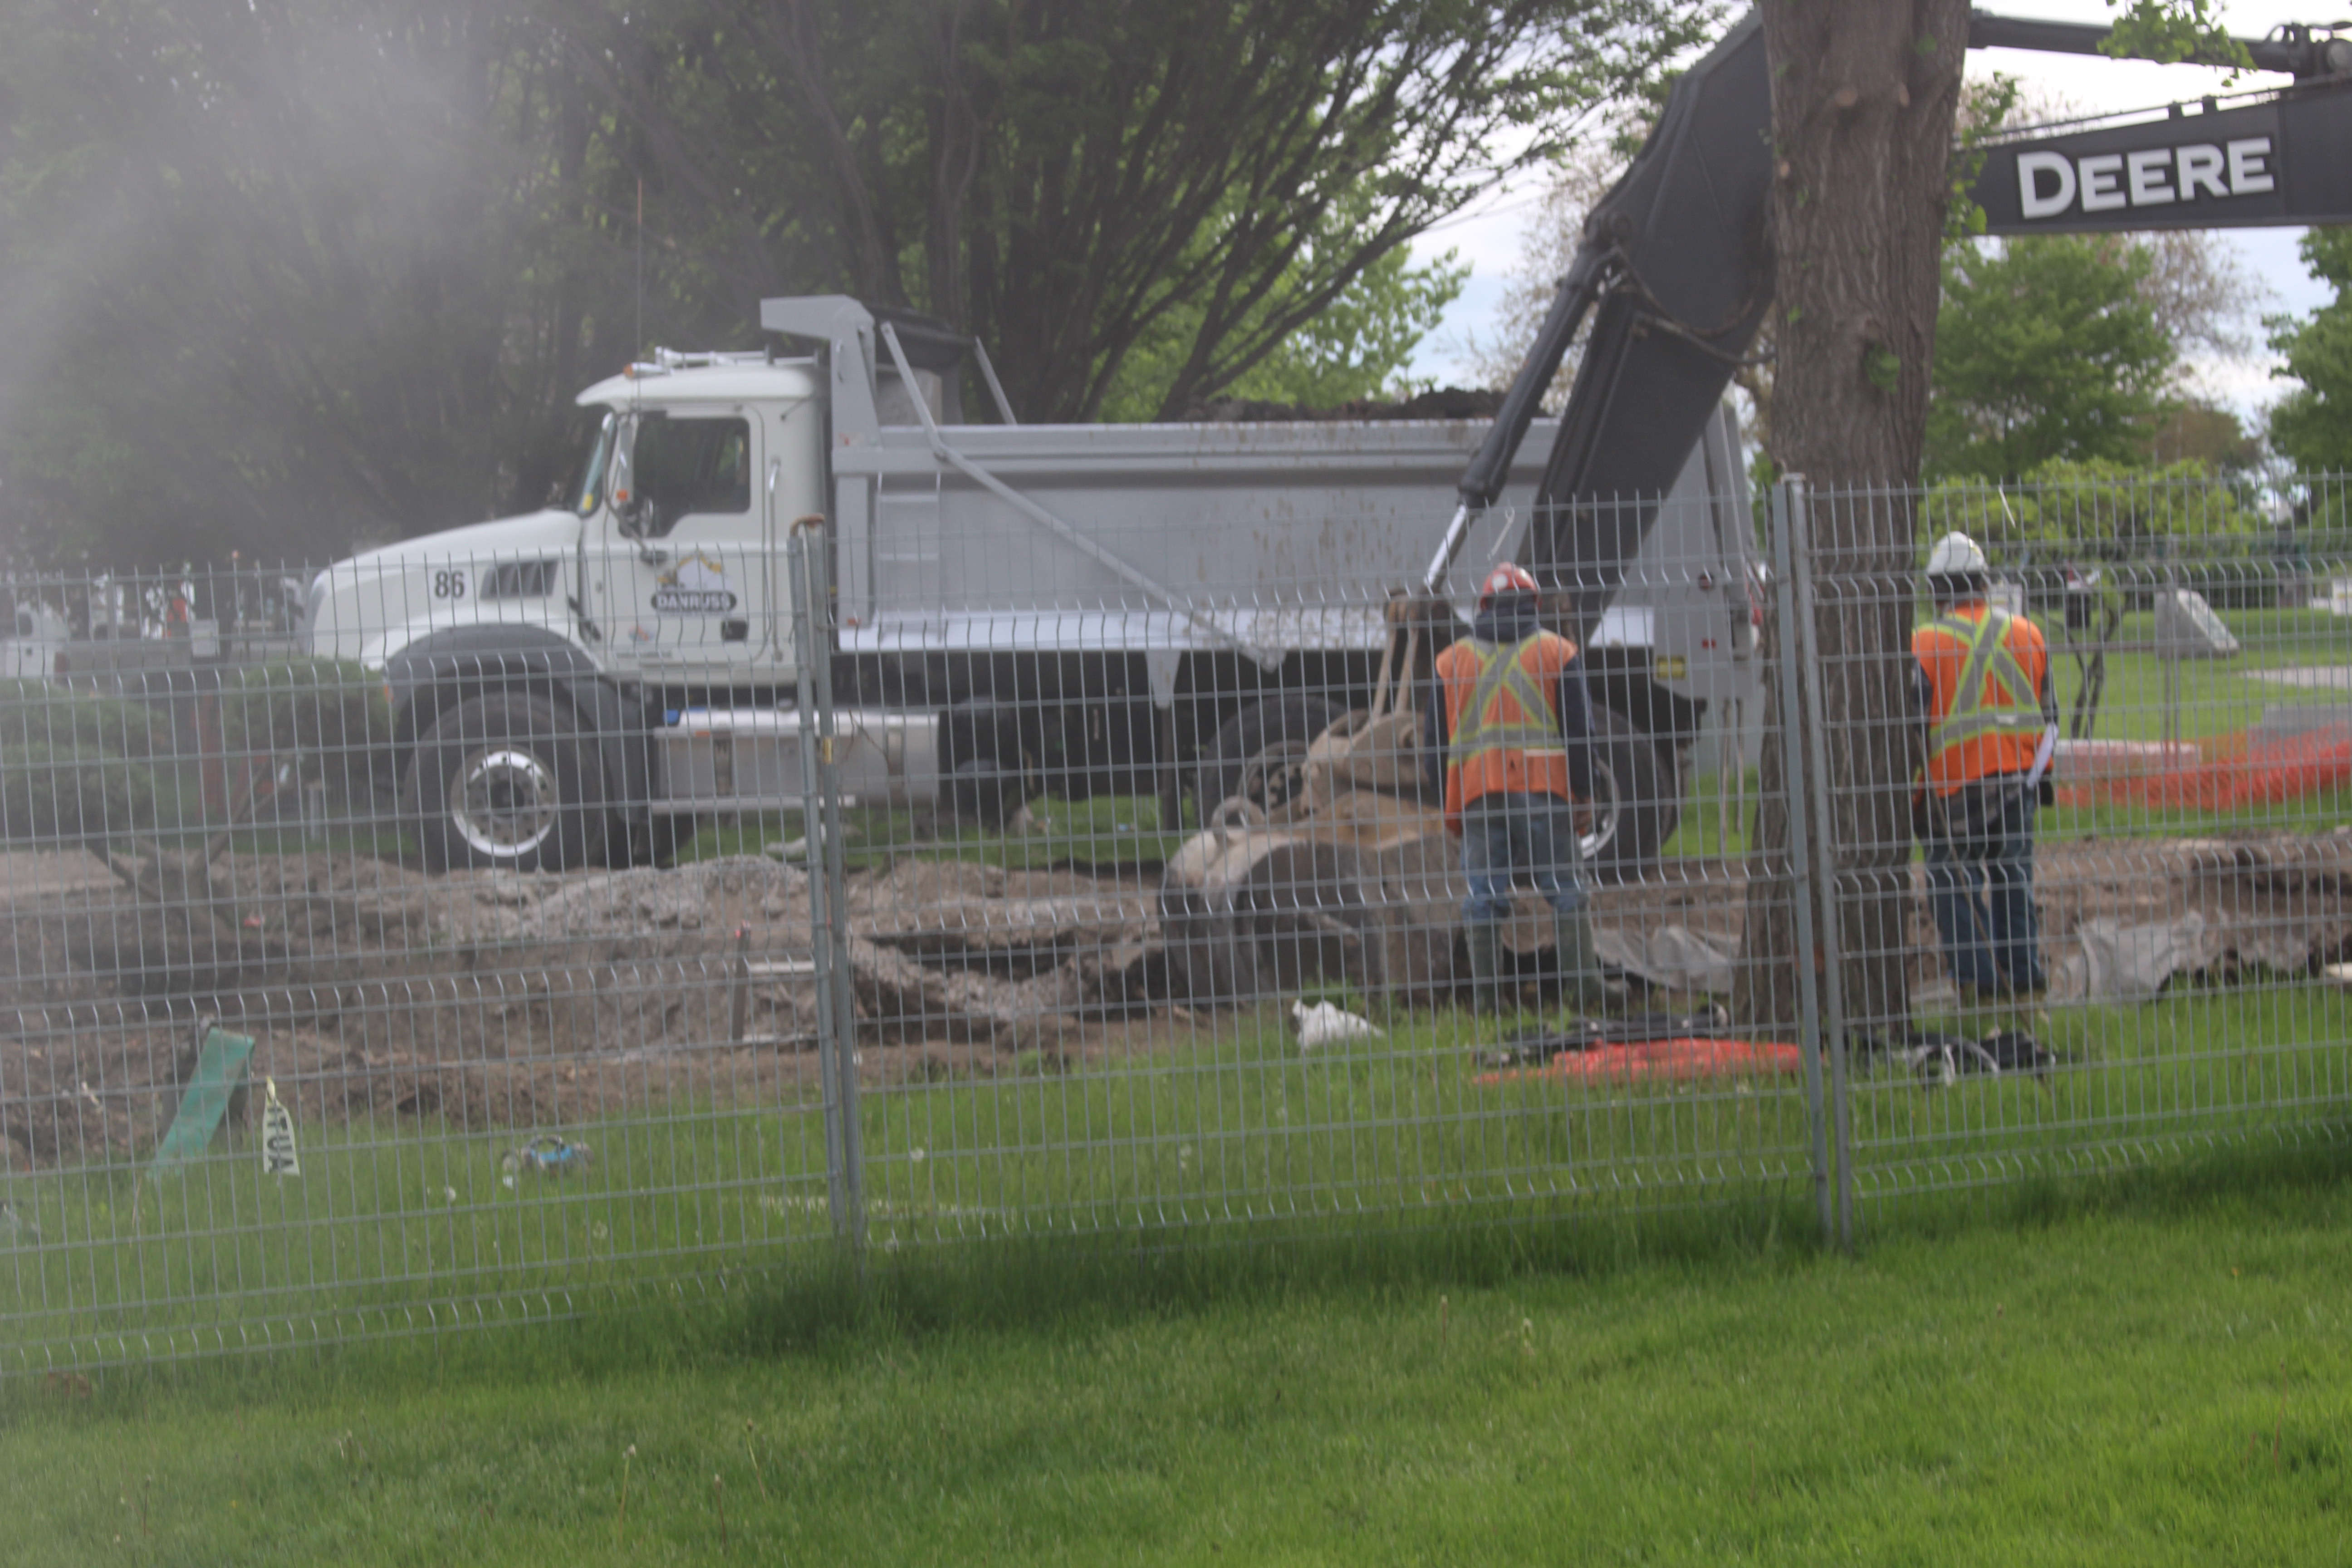 Construction workers dig where a sink hole opened up in Dieppe Park in Windsor, May 20, 2015. (Photo by Adelle Loiselle)